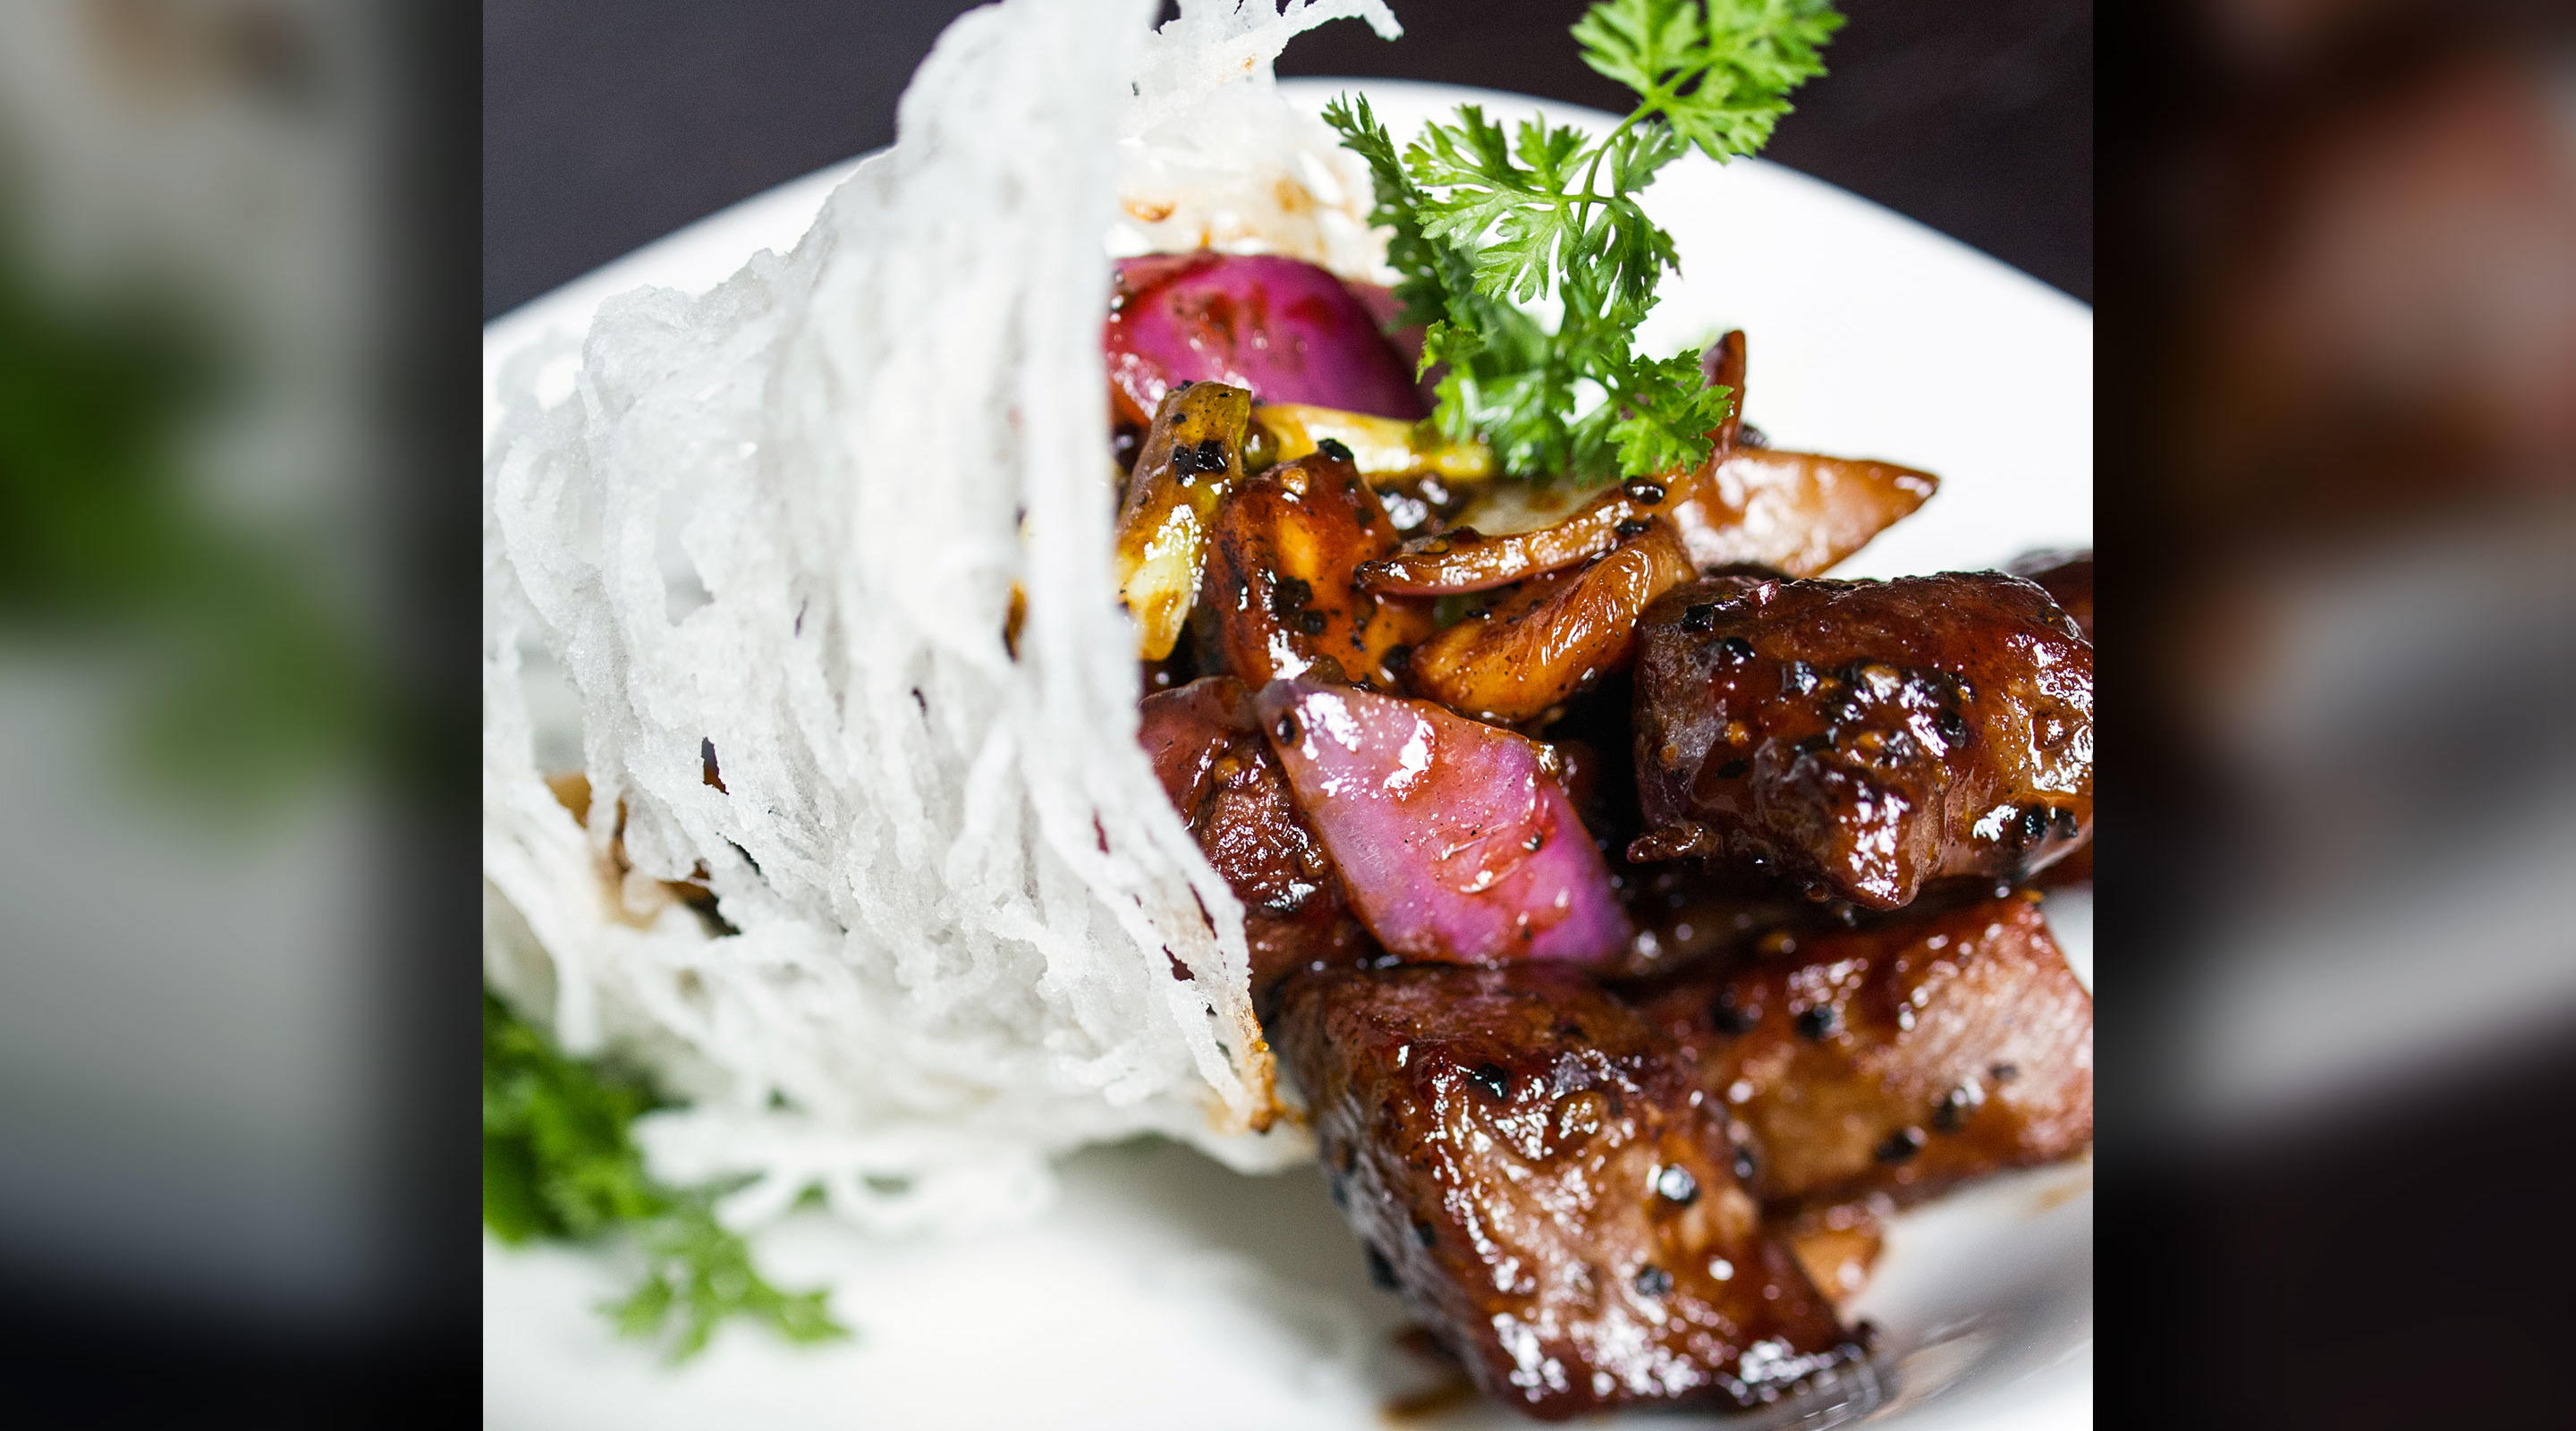 A Hakkasan Restaurant Signature Dish: Stir-fry black pepper rib eye beef with merlot.